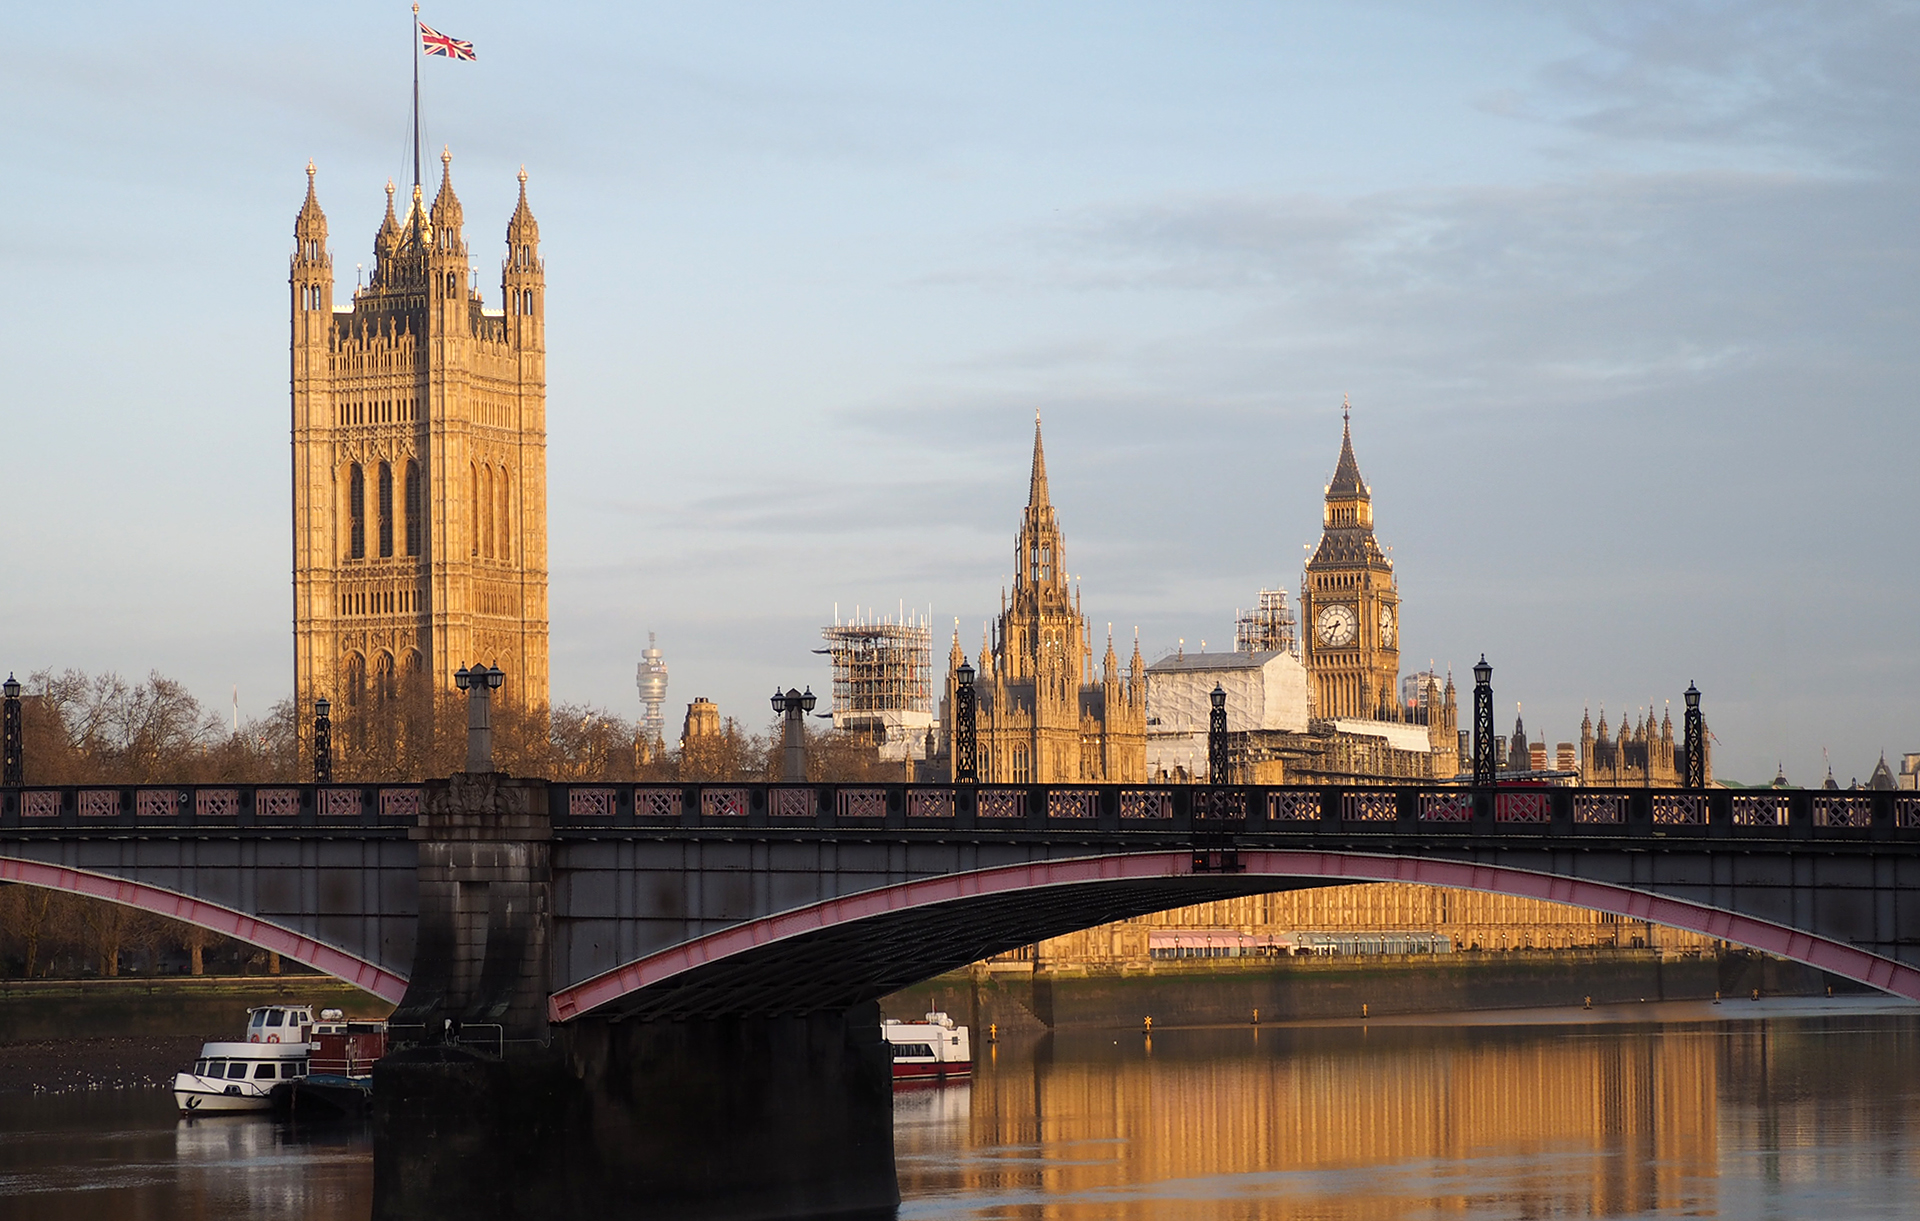 Morning view of Lambeth Bridge and the Parliament